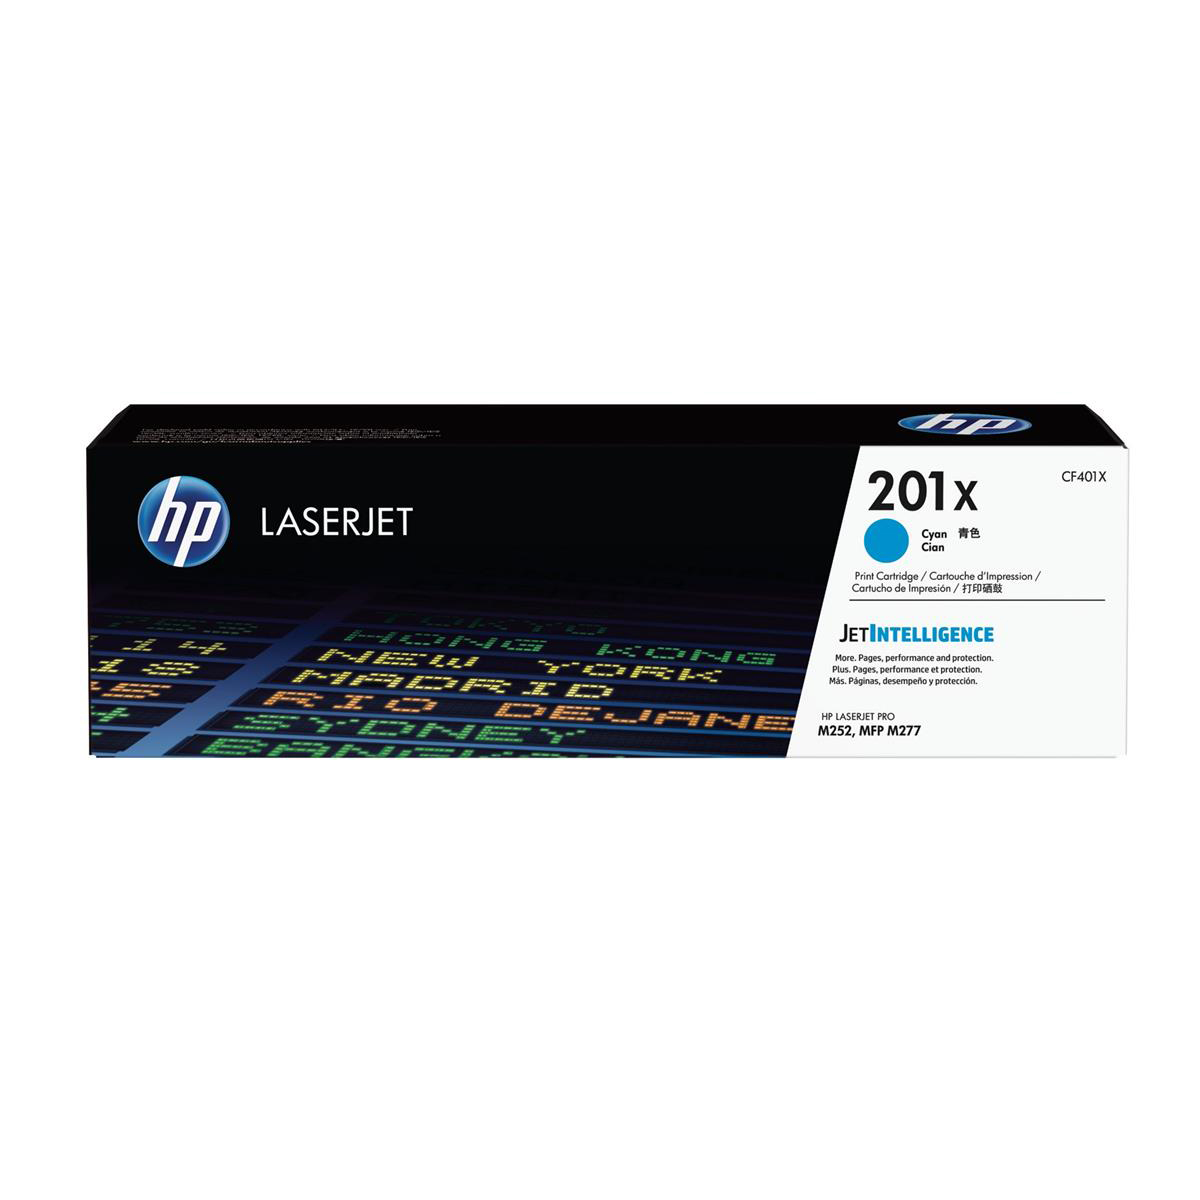 Hewlett Packard [HP] 201X Laserjet Toner Cartridge Cyan High Yield Ref CF401X